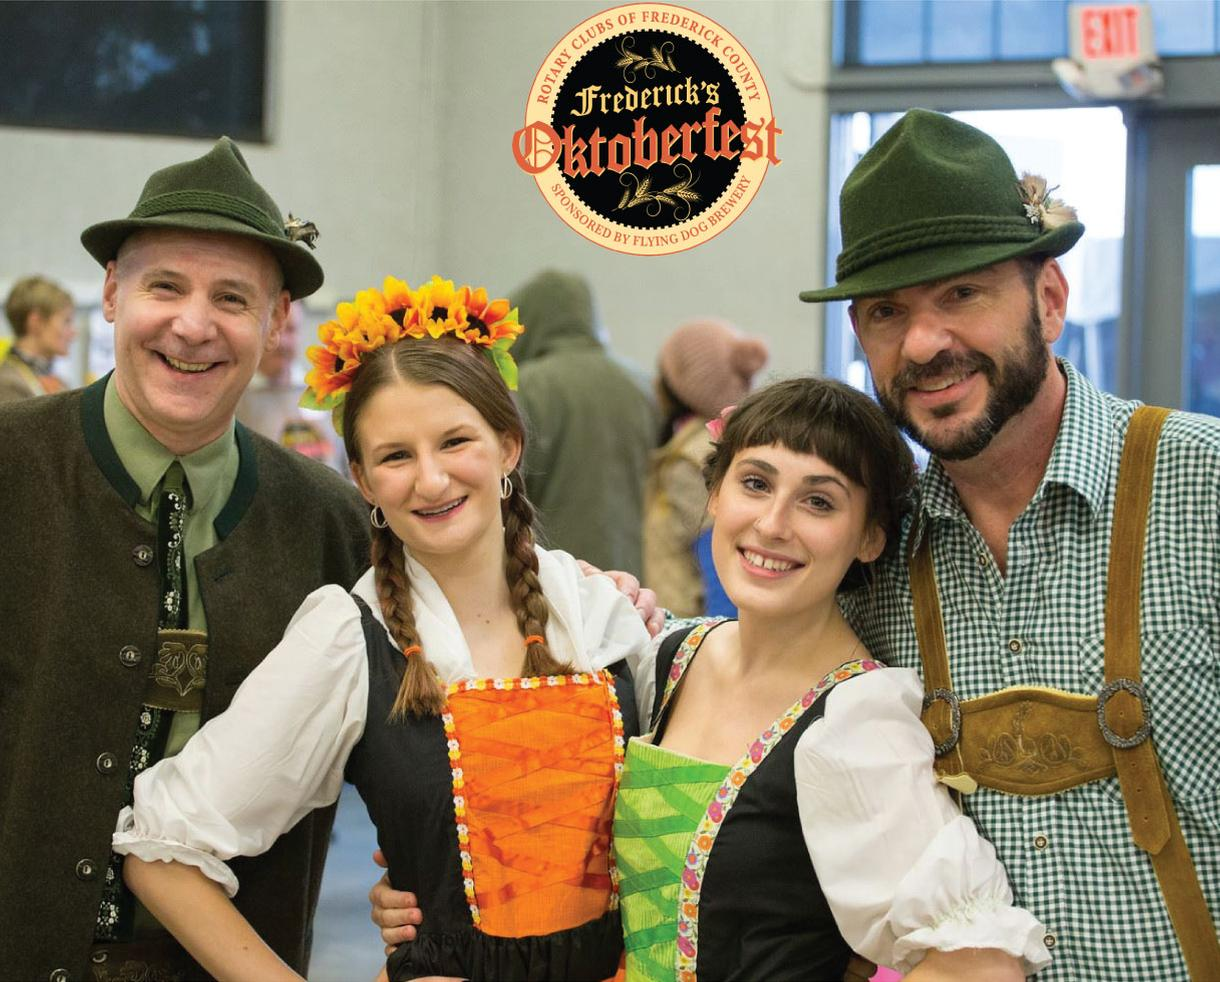 Family Four Pack Tickets to Frederick's Oktoberfest